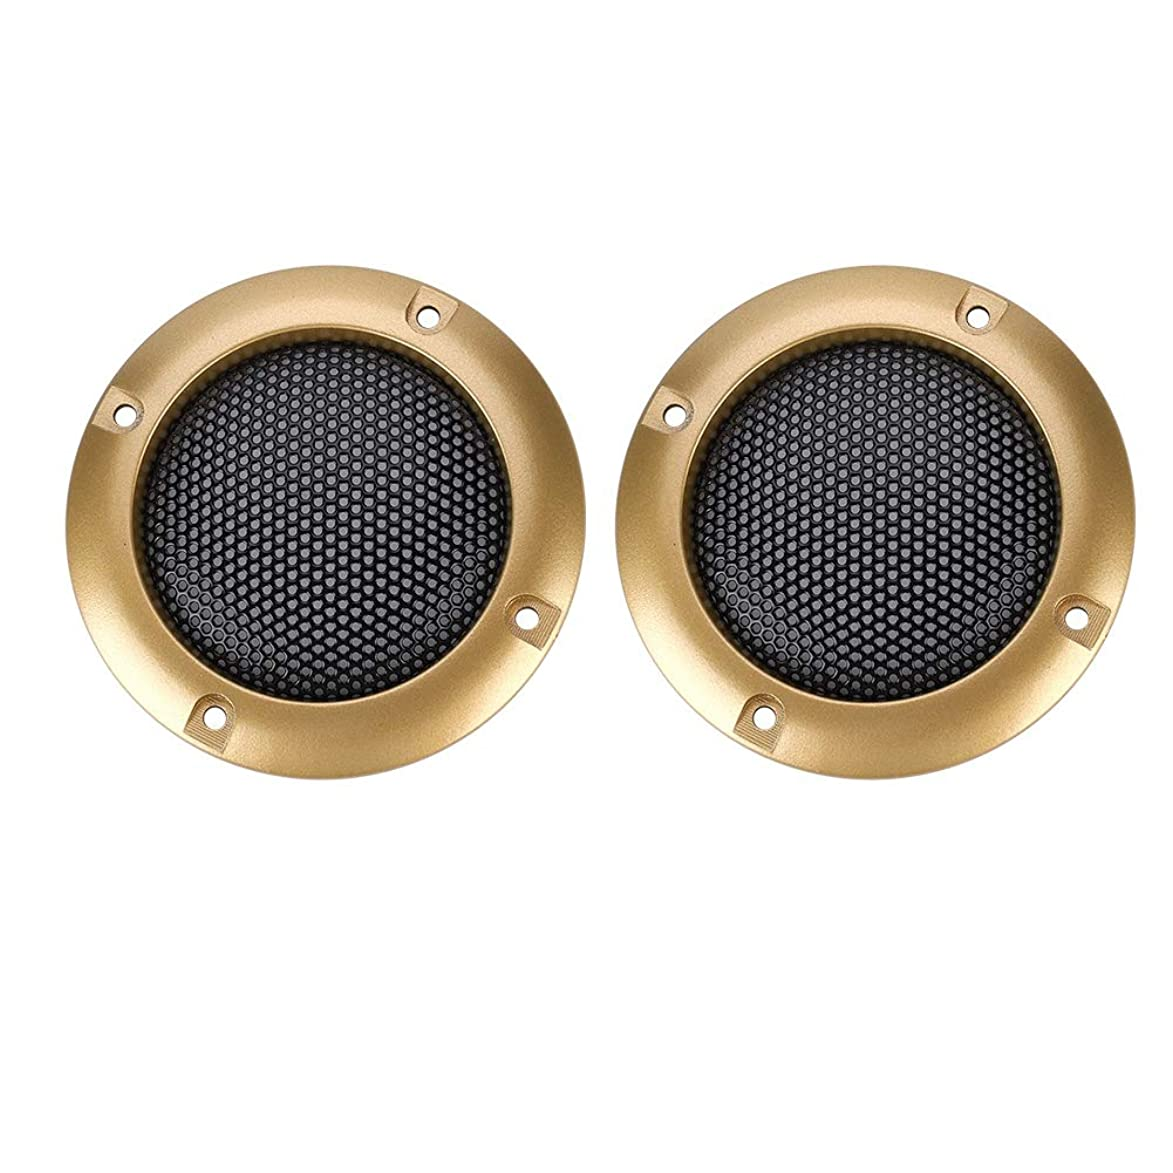 Zerone 2 Inch Speaker Decorative Steel Mesh Circle Car Speaker Protective Mesh Cover Replacement(Gold)